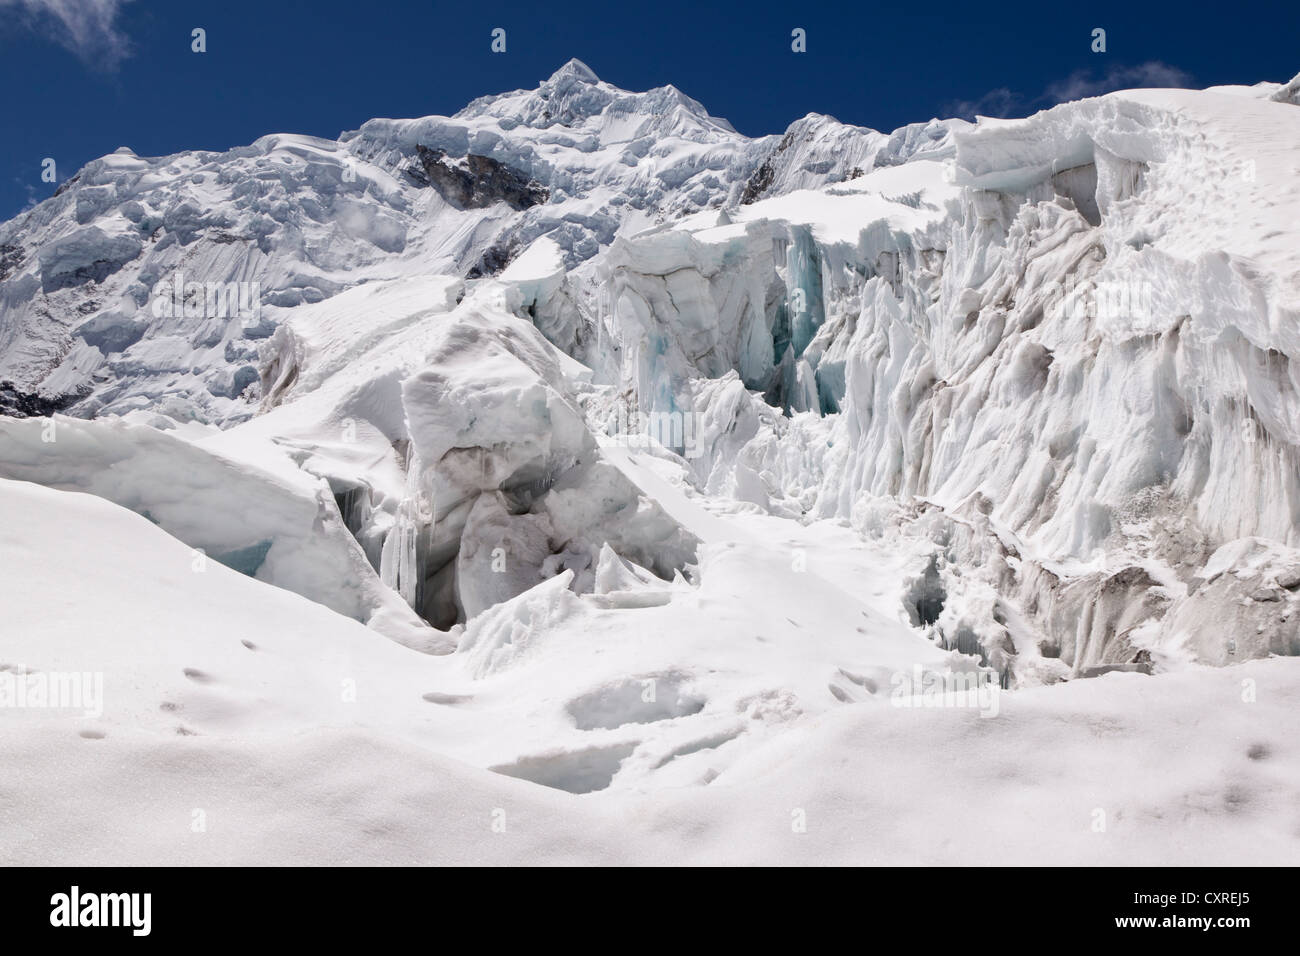 Icefall in front of the summit of Nevado Chopicalqui mountain, Cordillera Blanca mountain range, Andes, Peru, South - Stock Image